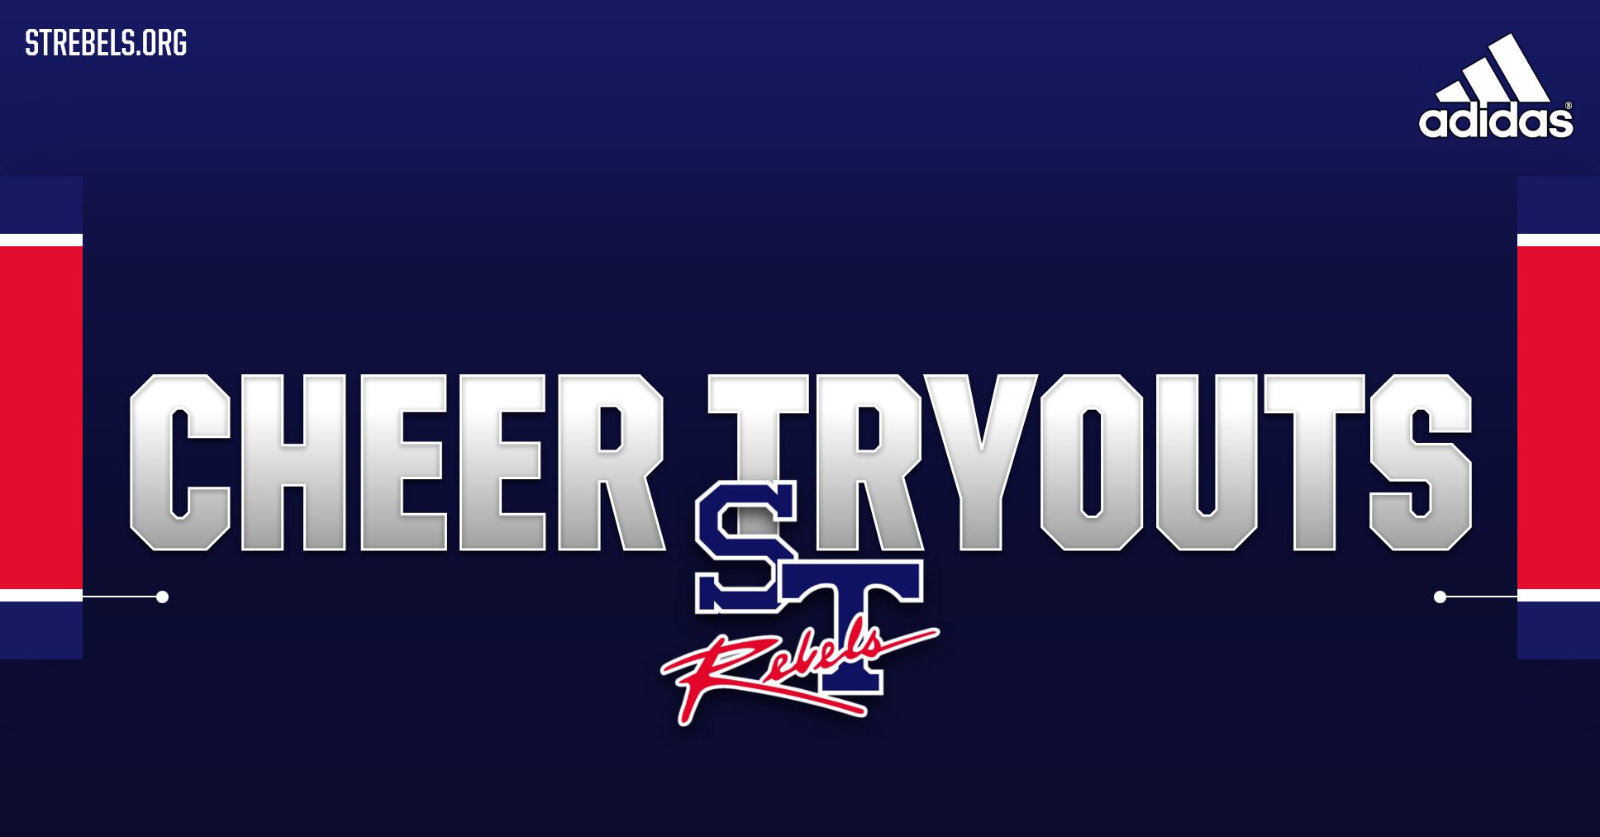 STHS Cheer Tryout Interest Form